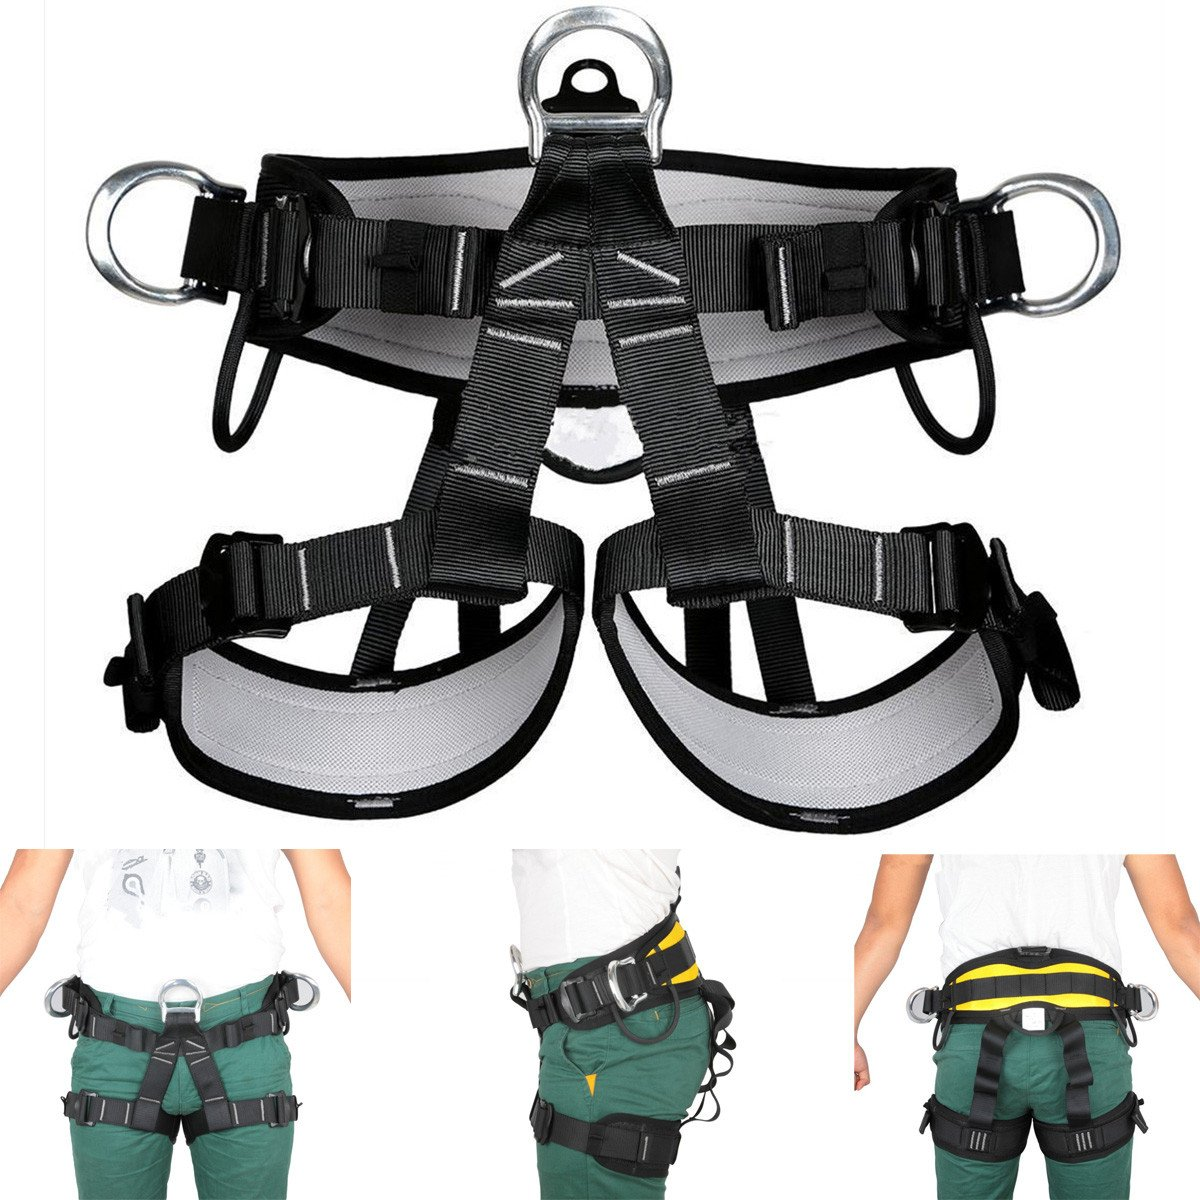 OlogyMart Pro Tree Carving Fall Protection Rock Climbing Equip Gear Rappelling Harness